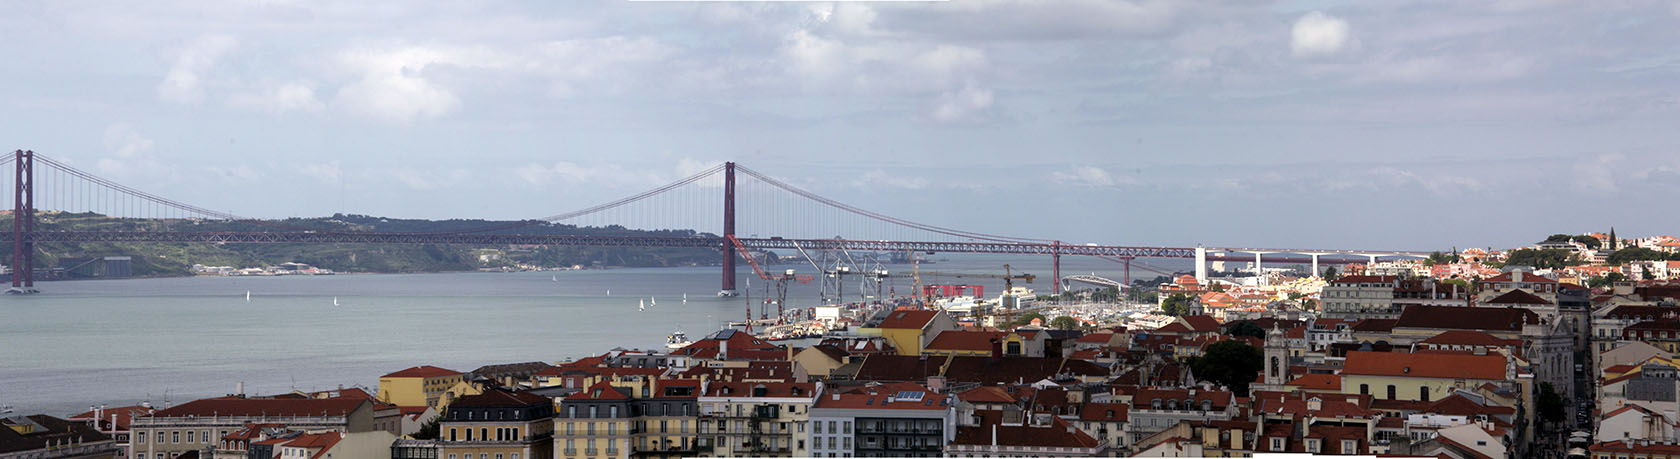 Lisbon_April 25th Bridge Panorama  #Portugal #Lisbon @GingerandNutmeg